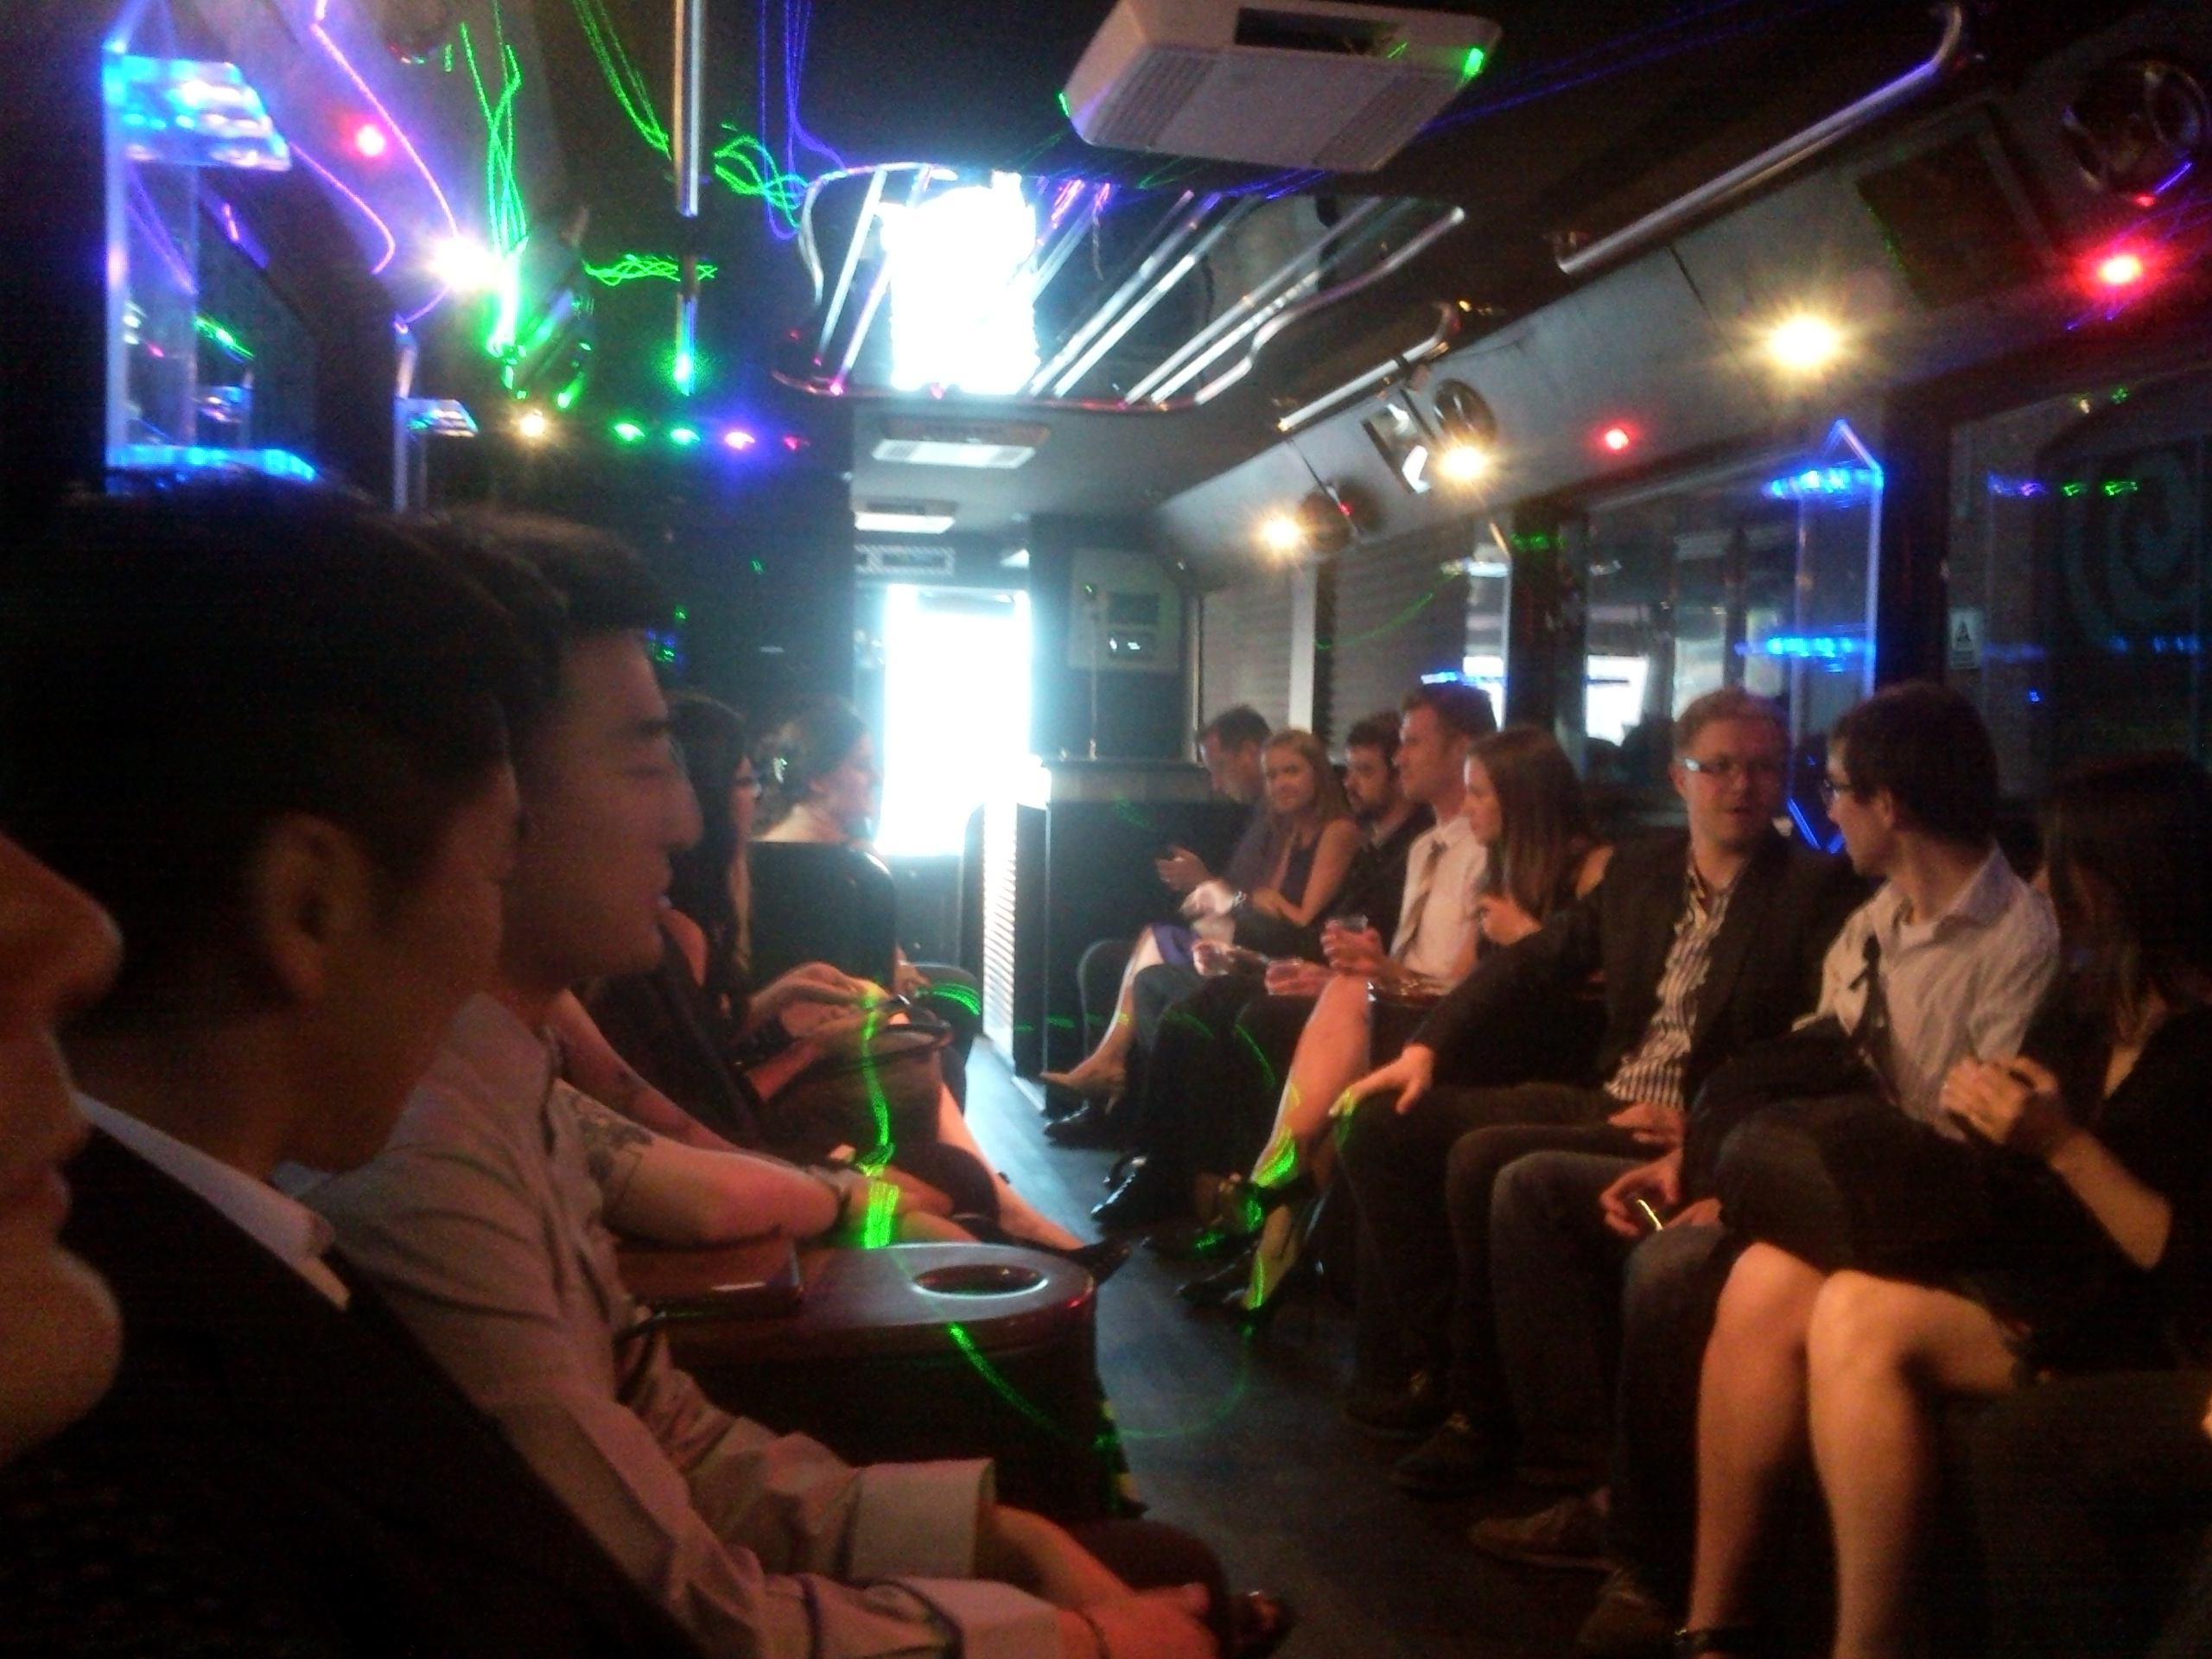 On the party bus - Evgeny and Renat chatting while we wait to get going